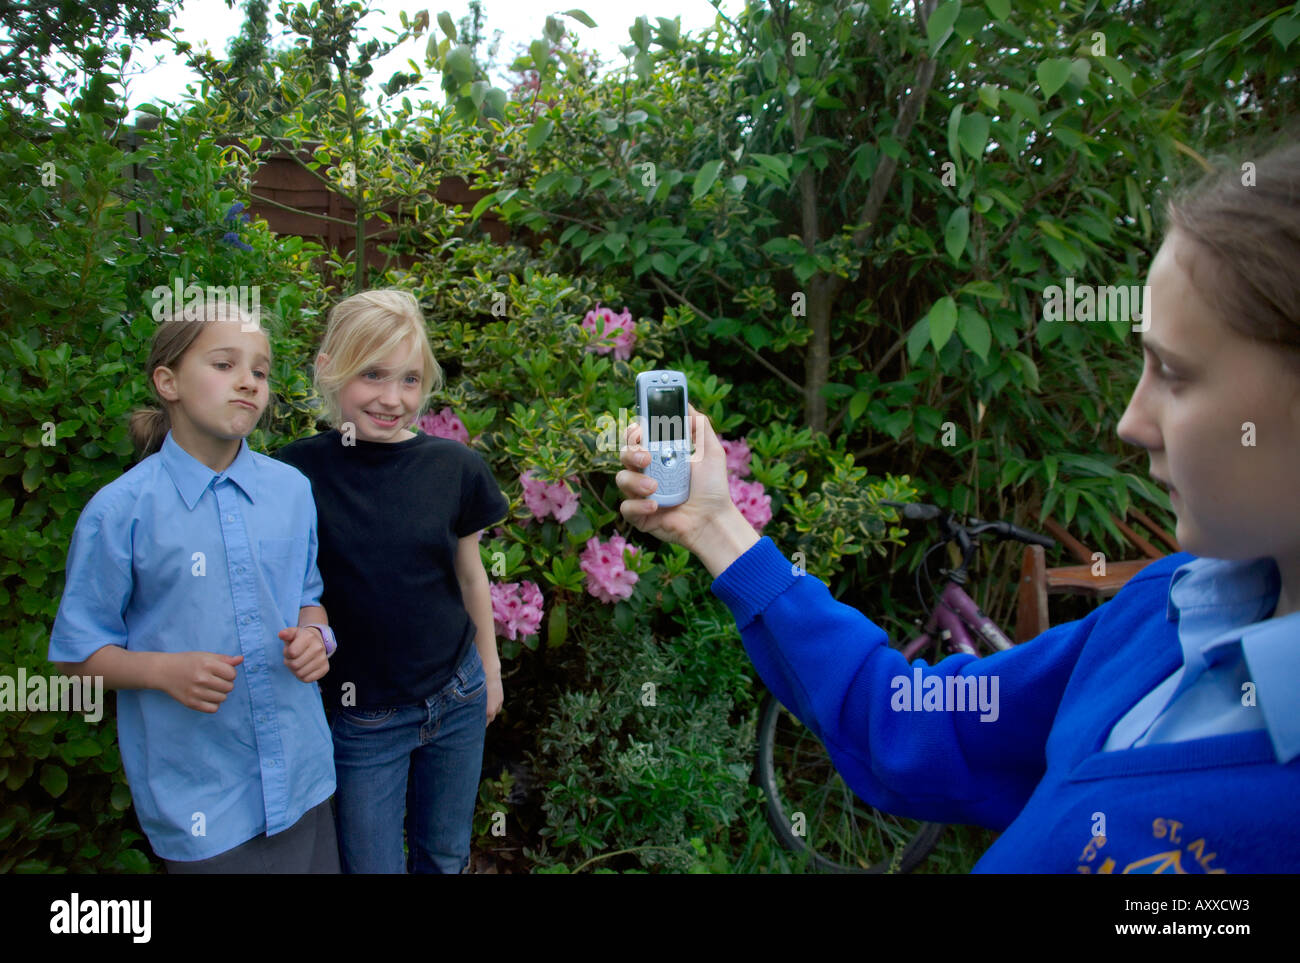 young girls smiling cheekily photographed by mobile phone camera - Stock Image